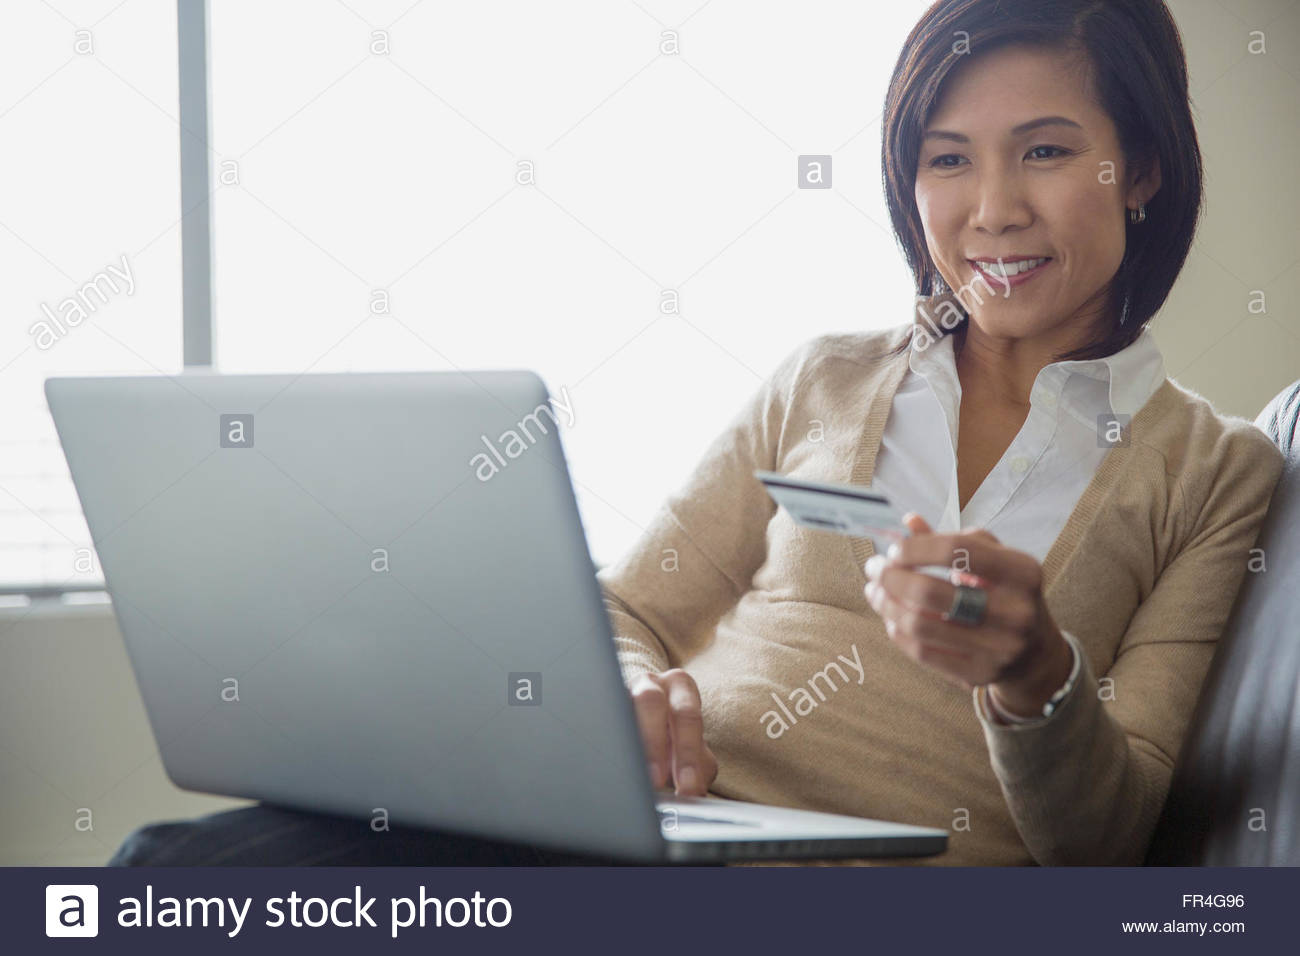 Asian woman making online purchase with credit card. - Stock Image